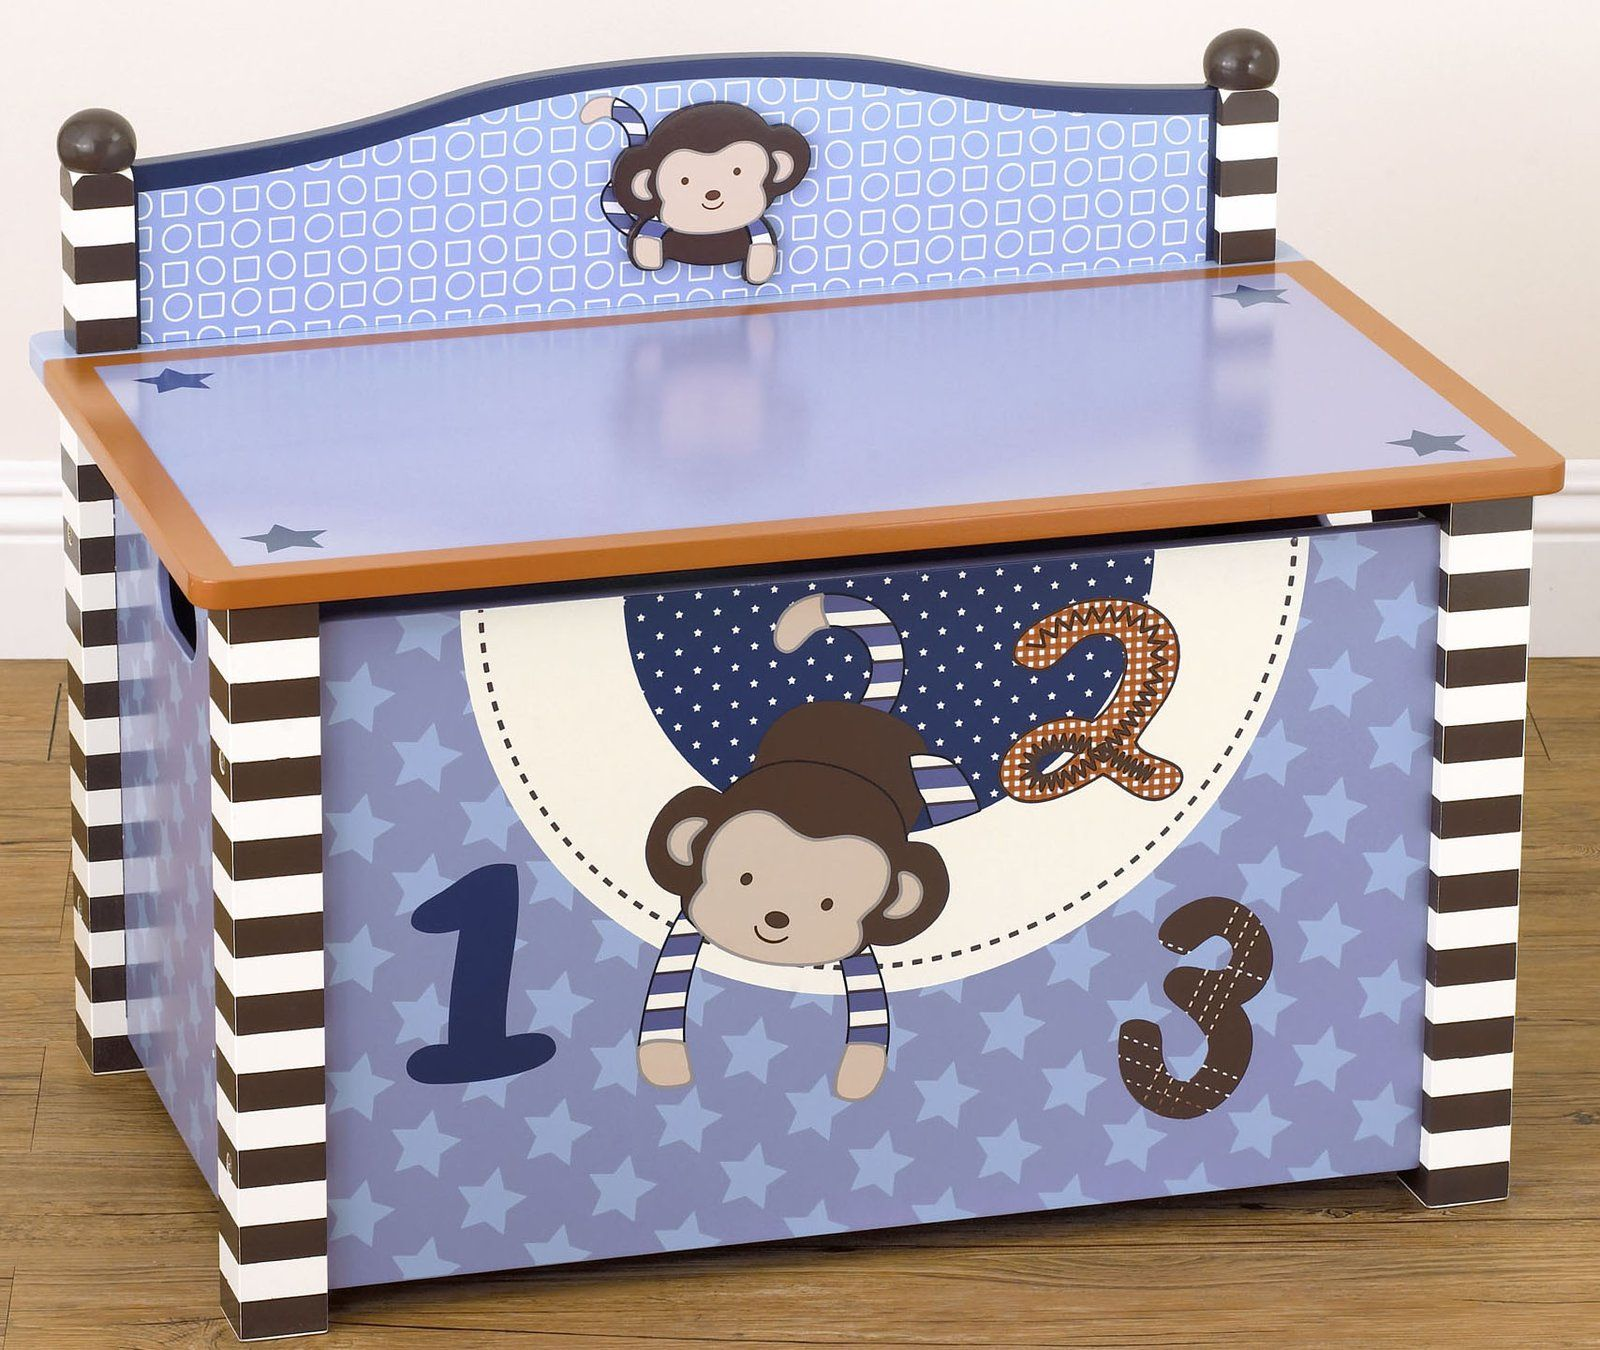 Toy Box Baby Toy Box Toy Boxes Monkey Decorations